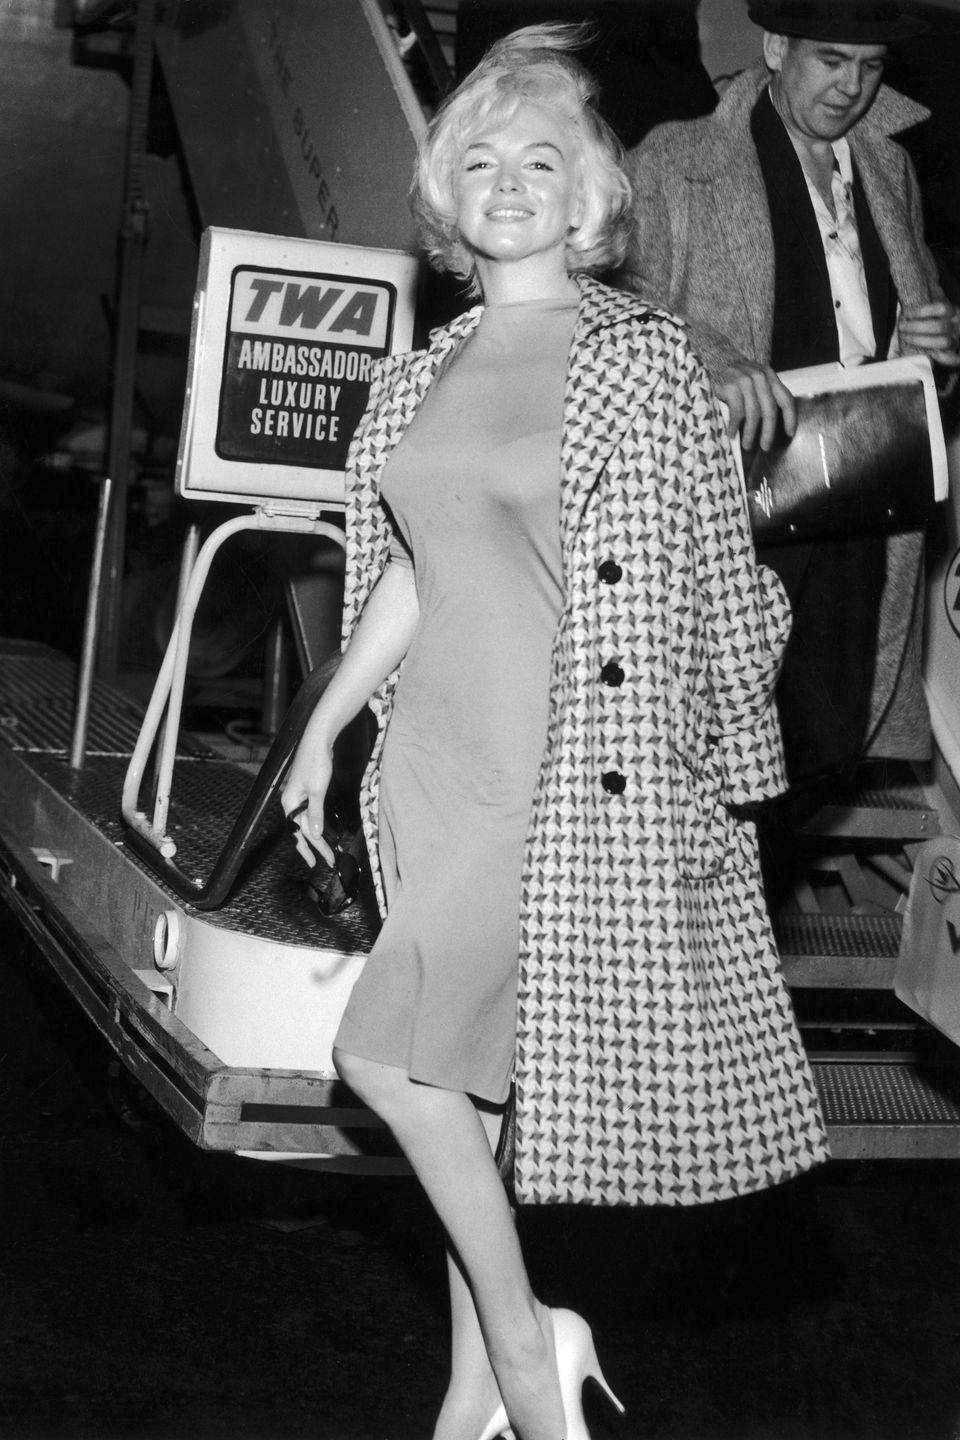 <p>Monroe arrives at New York International Airport (now LaGuardia) from Los Angeles. She died one year later in 1962. </p>